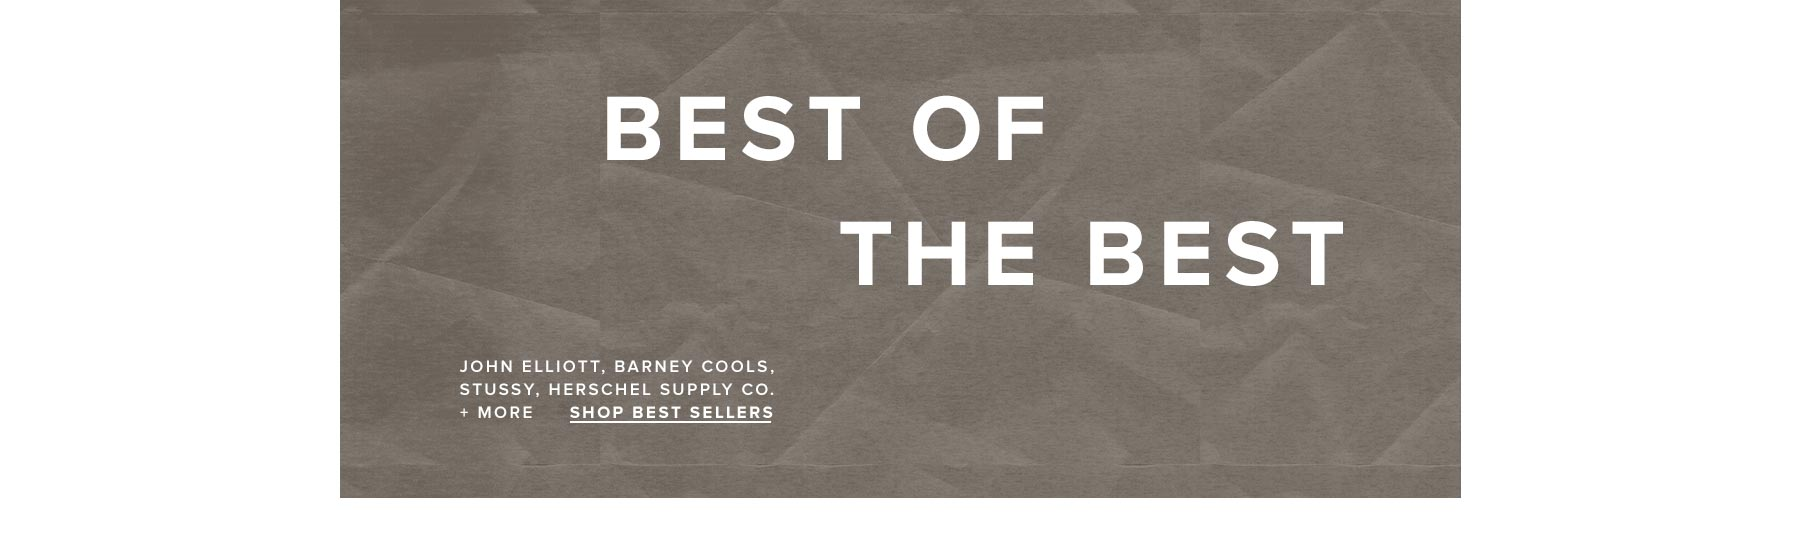 The Best of The Best from John Elliott, Stussy, Herschel Supply Co Plus More. Shop Best Selelrs.